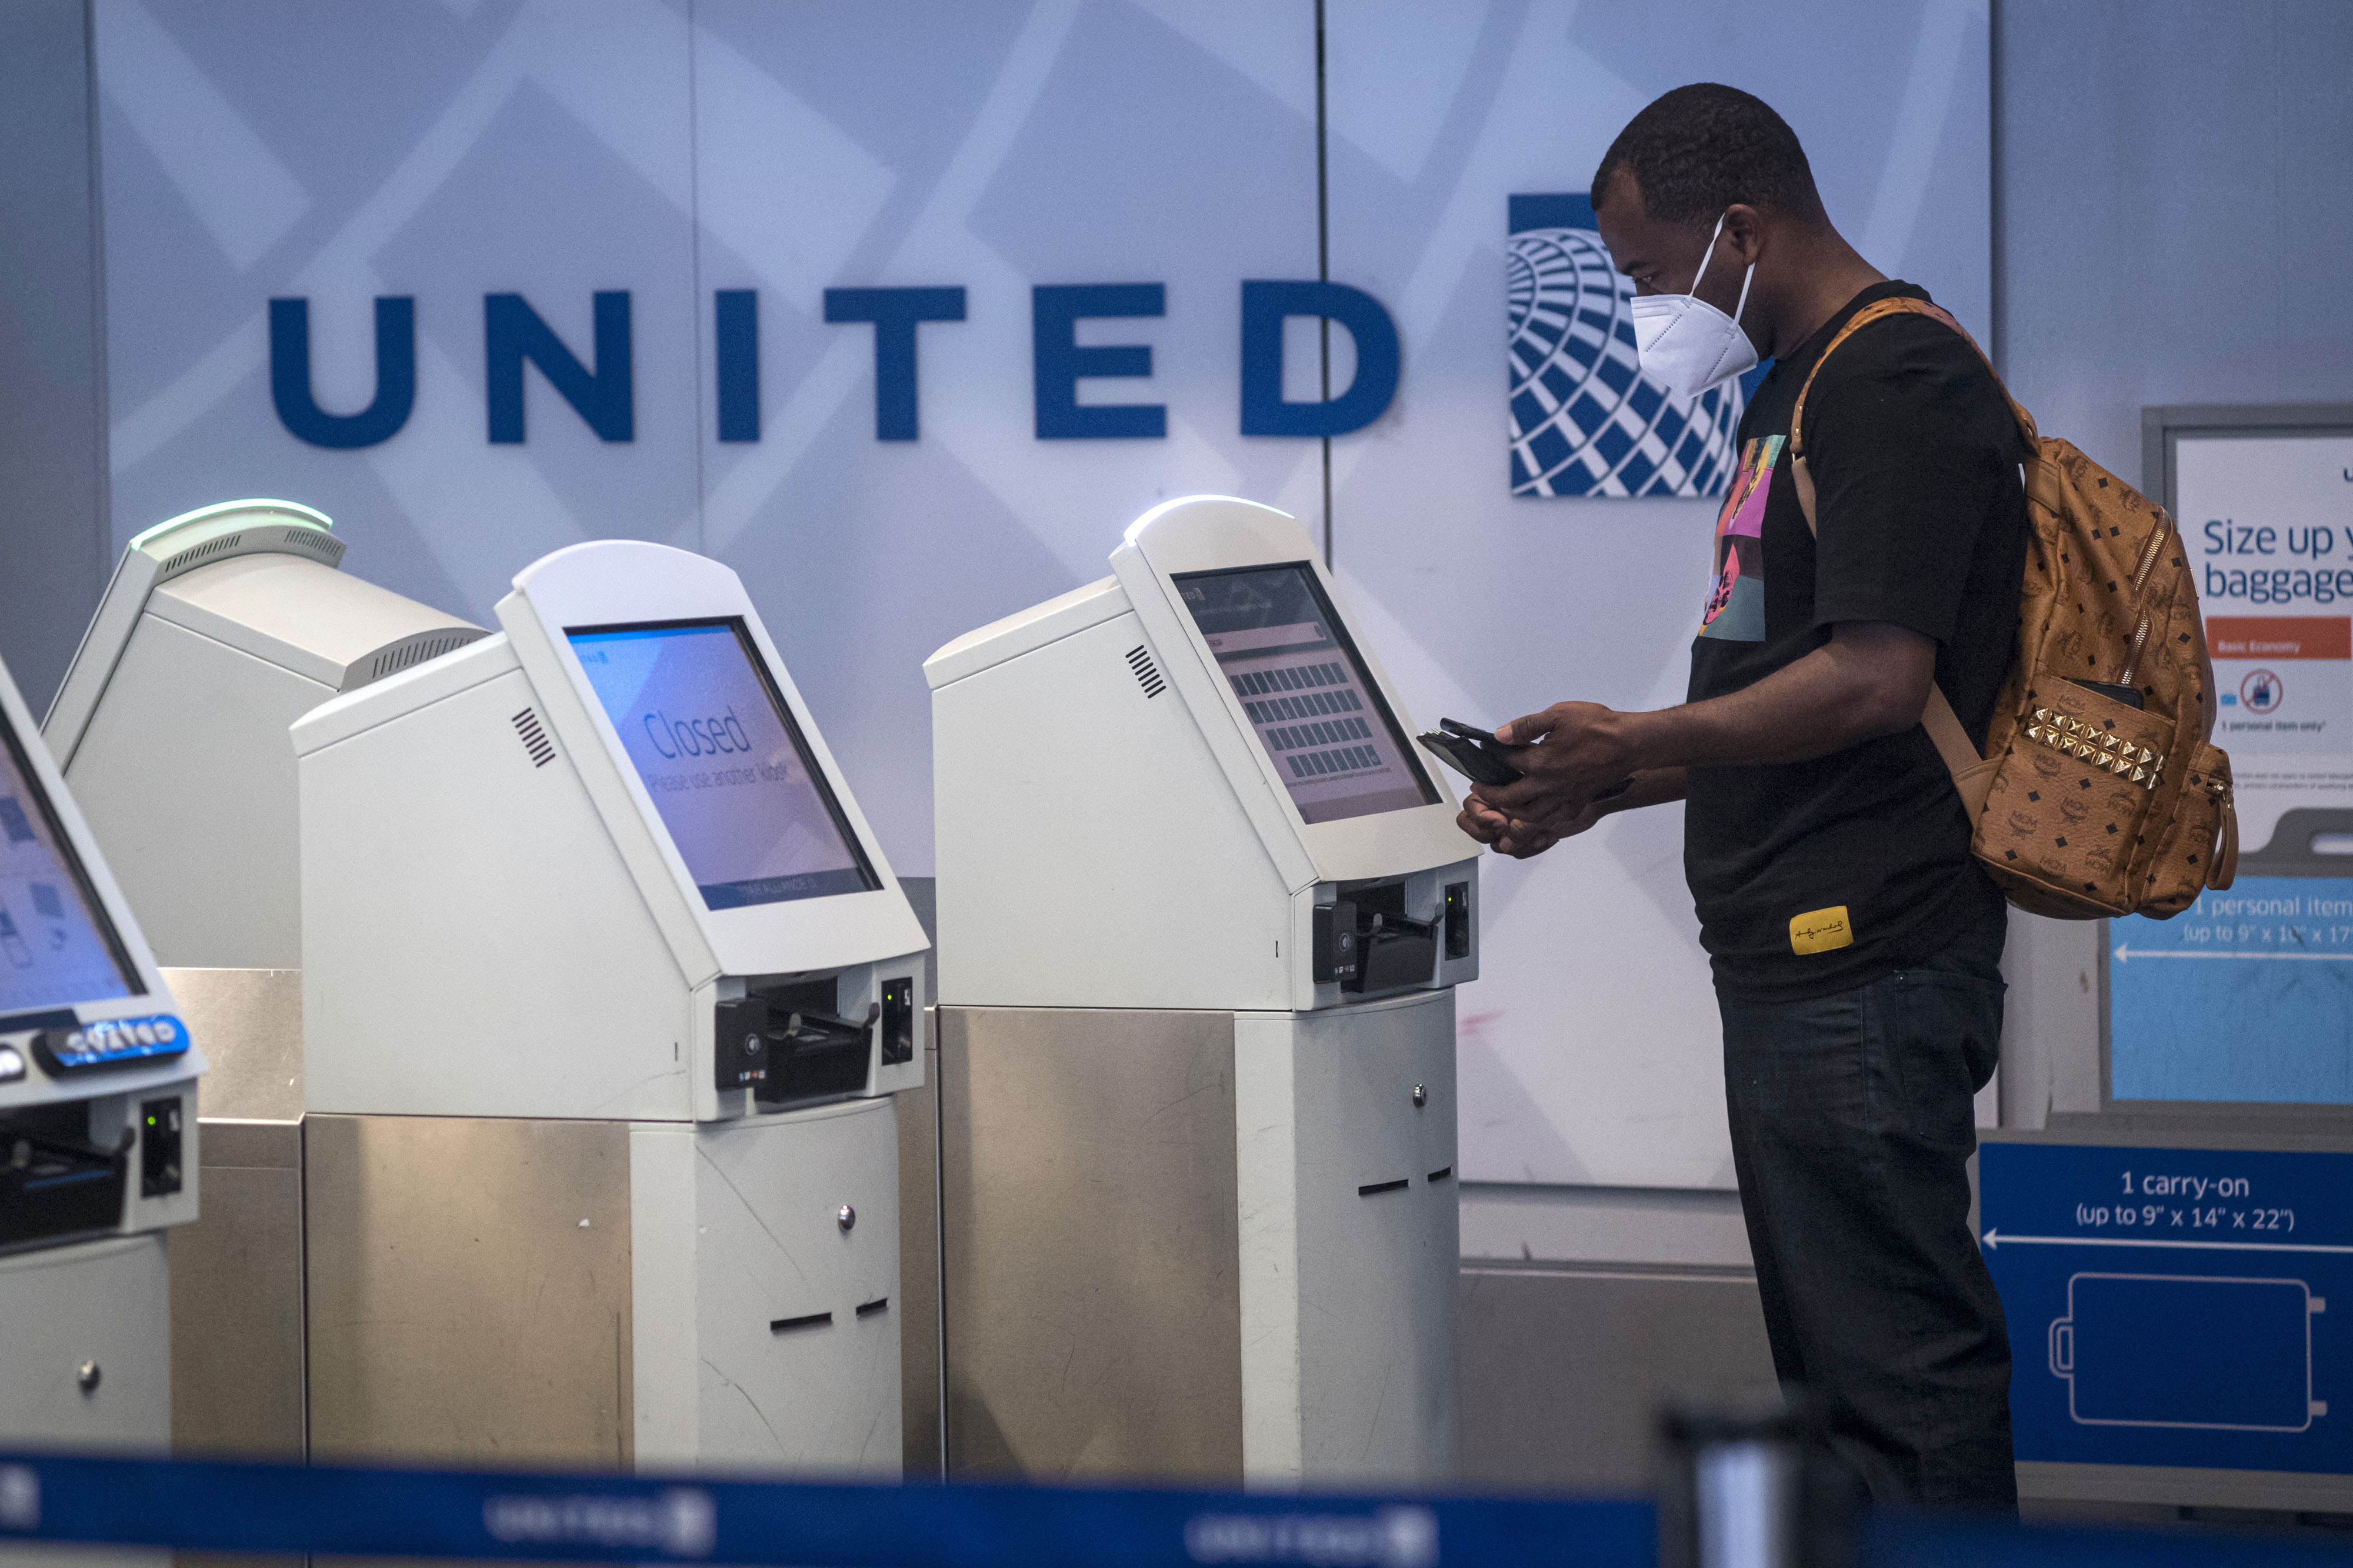 A person at San Francisco International Airport in California uses a kiosk to check-in at a United Airlines counter on July 1.